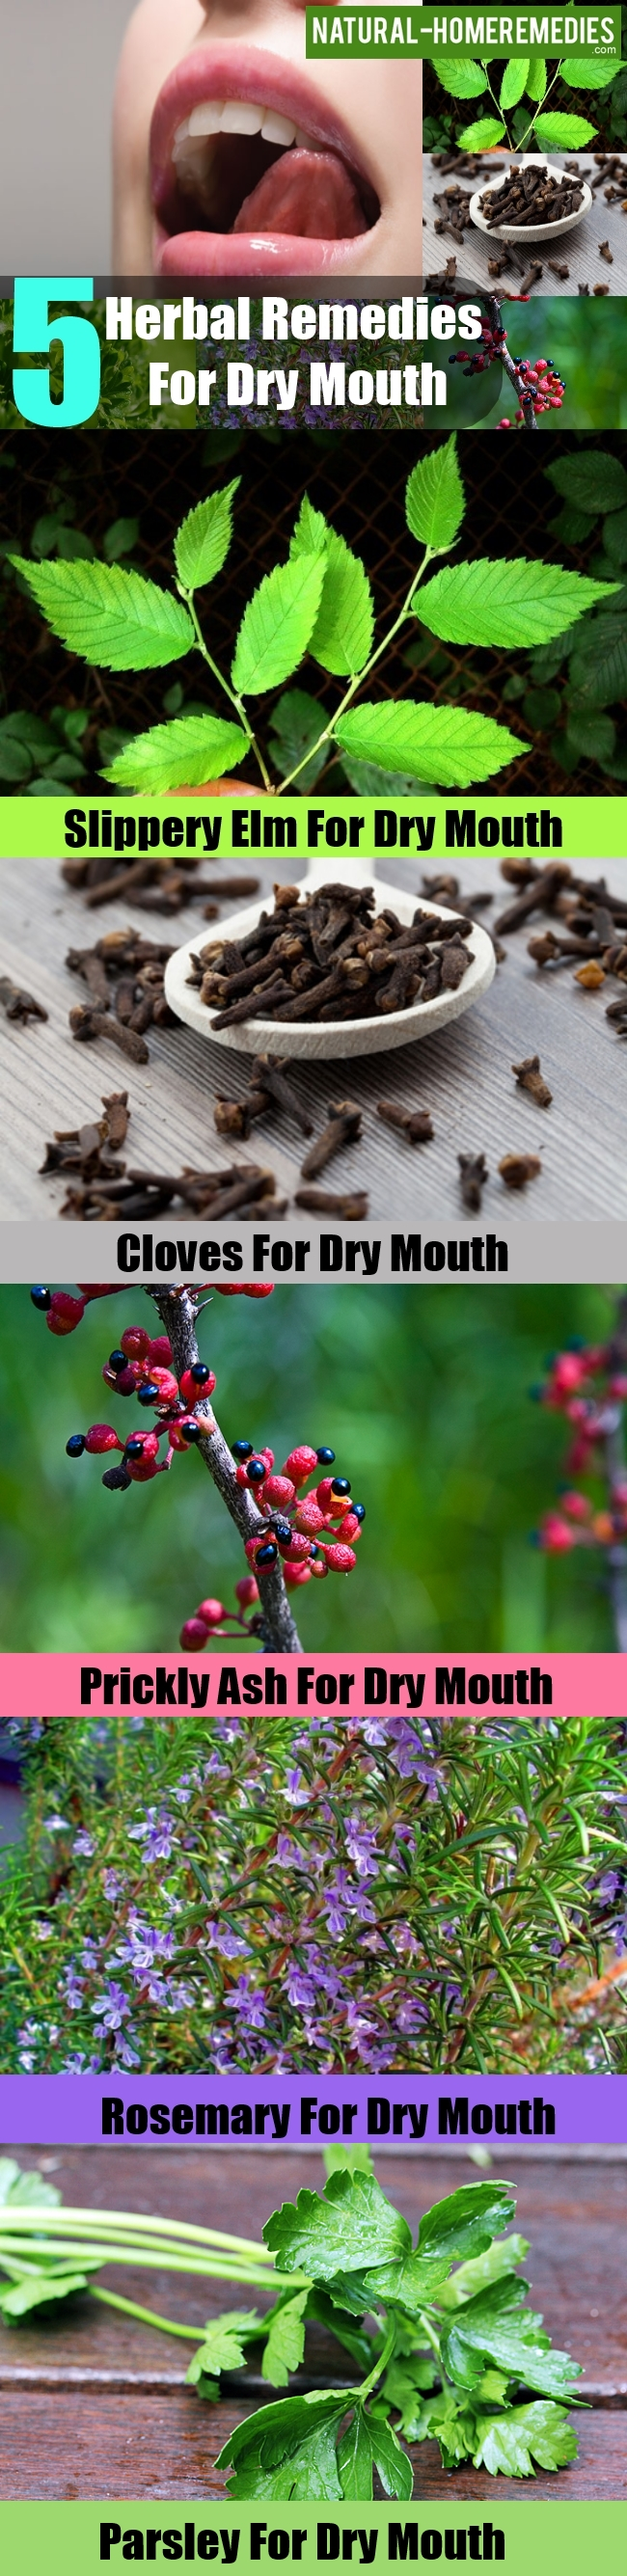 Herbal Remedies For Dry Mouth